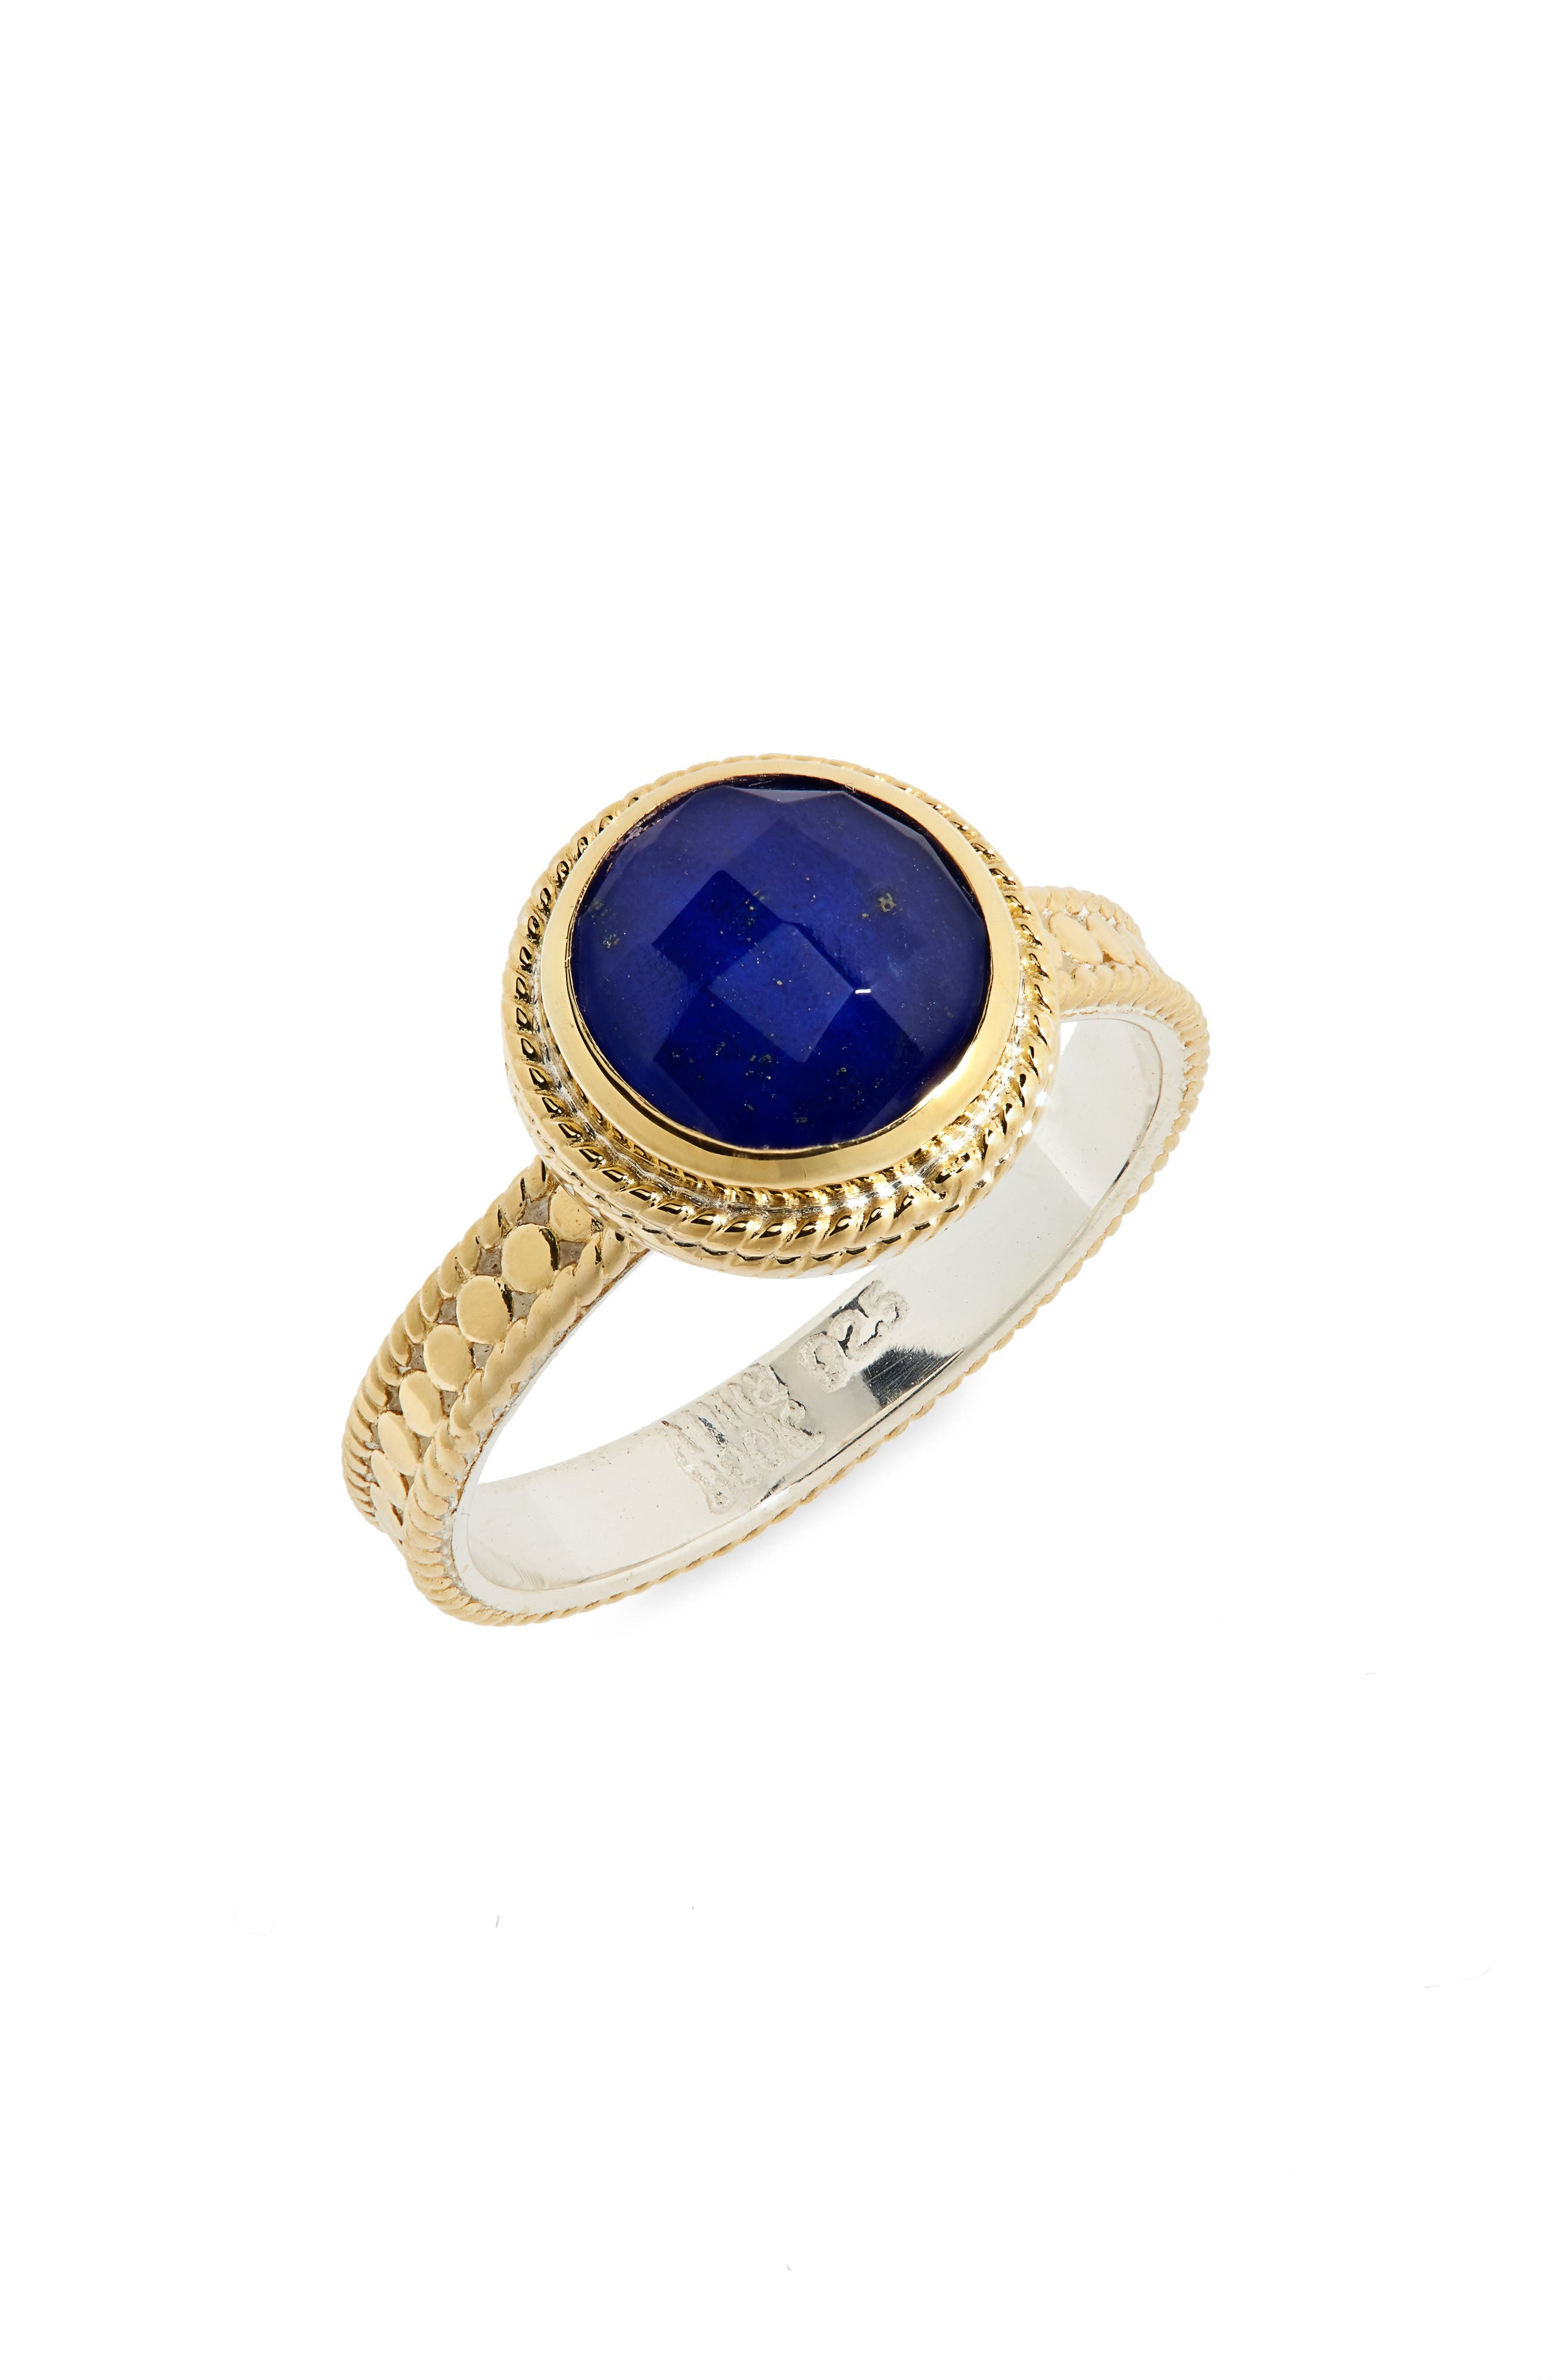 Semiprecious Stone Ring,                             Main thumbnail 1, color,                             BLUE LAPIS